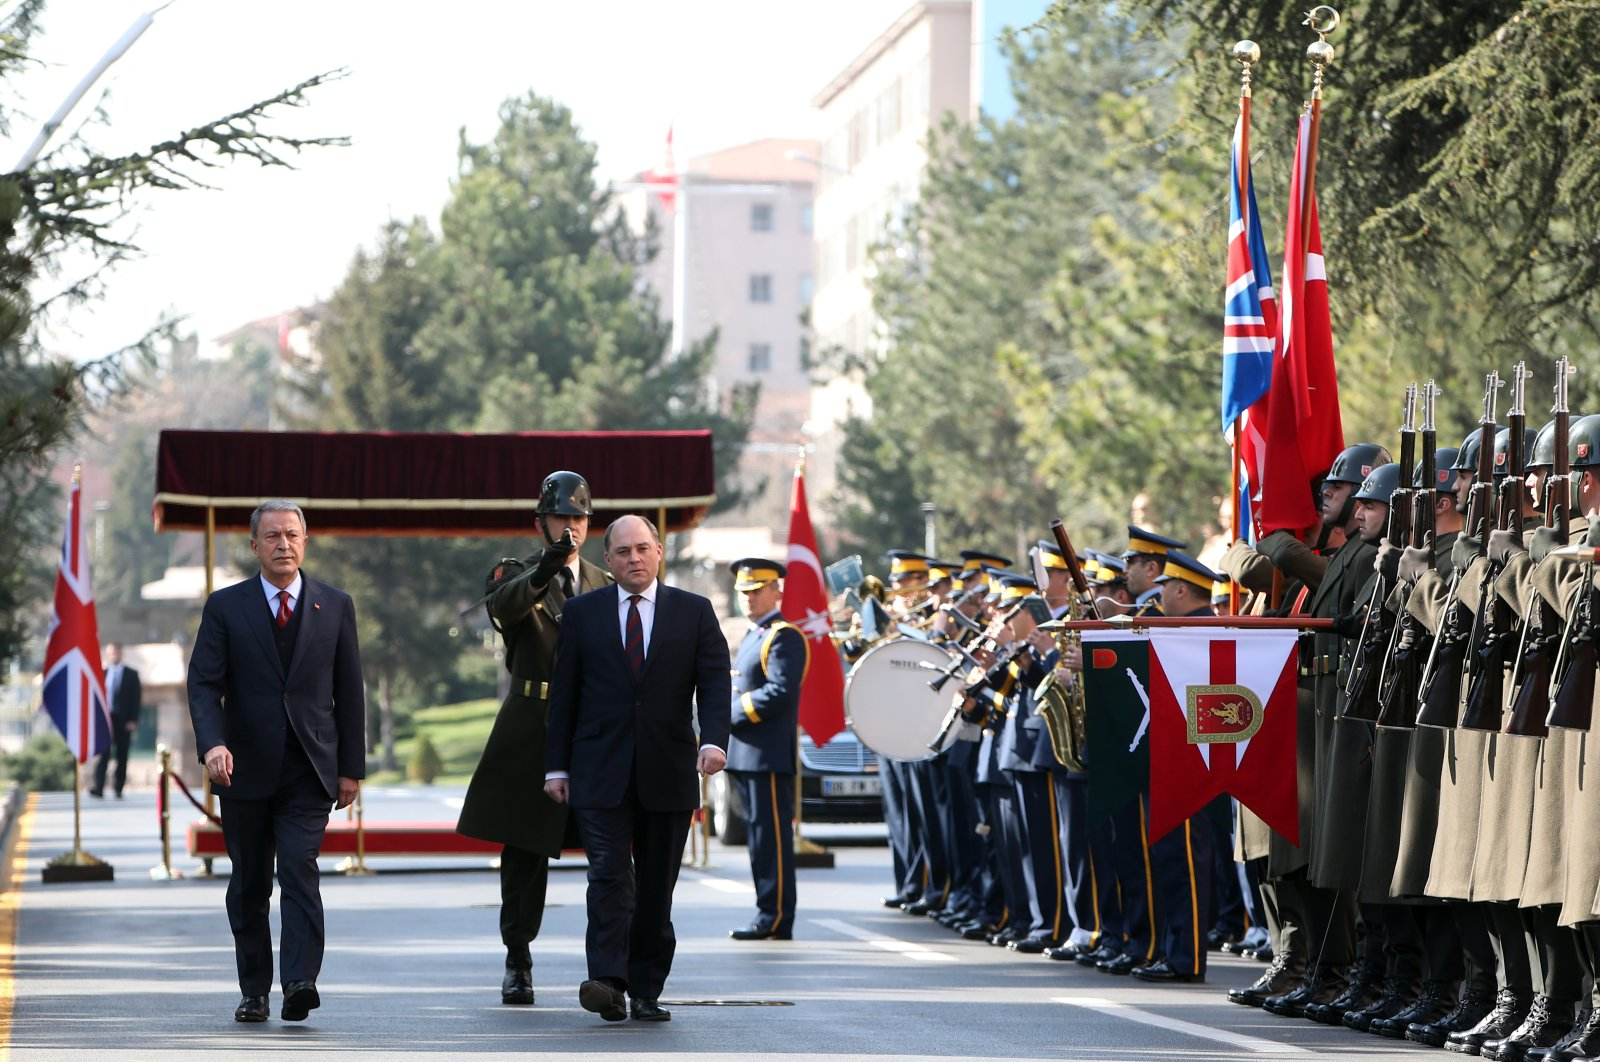 Defense Minister Hulusi Akar and his British counterpart Ben Wallace attend a military ceremony to welcome the delegation in Ankara, Thursday, March 12, 2020. (AA Photo)